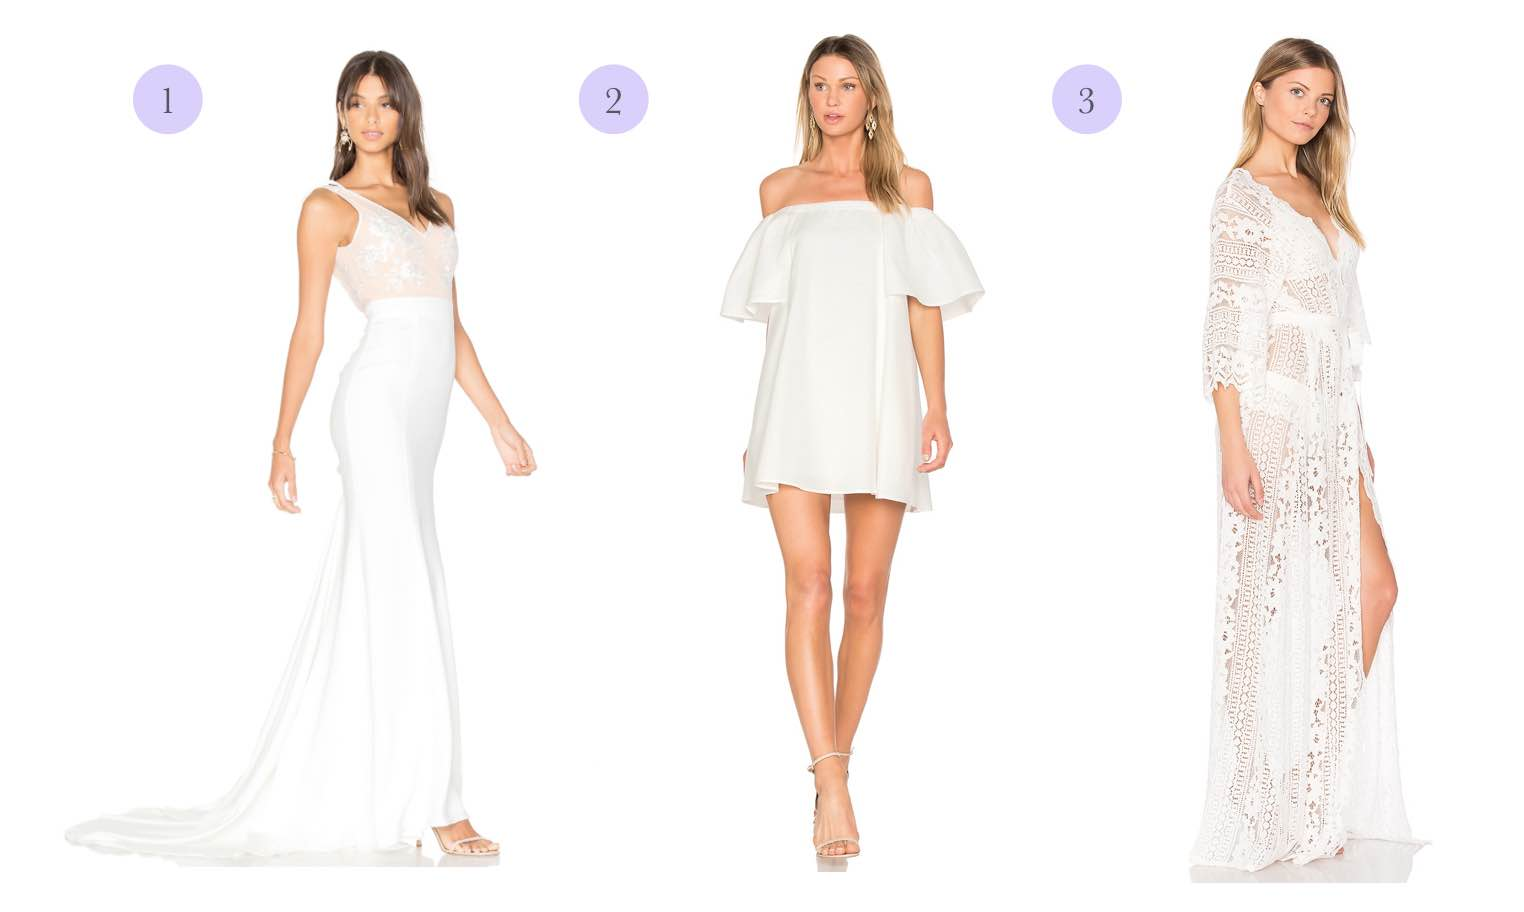 Bride Bridesmaid Wedding Guest Here S 9 Looks To Shop From Revolve Asia Wedding Network You won't go wrong with something from chanel. asia wedding network